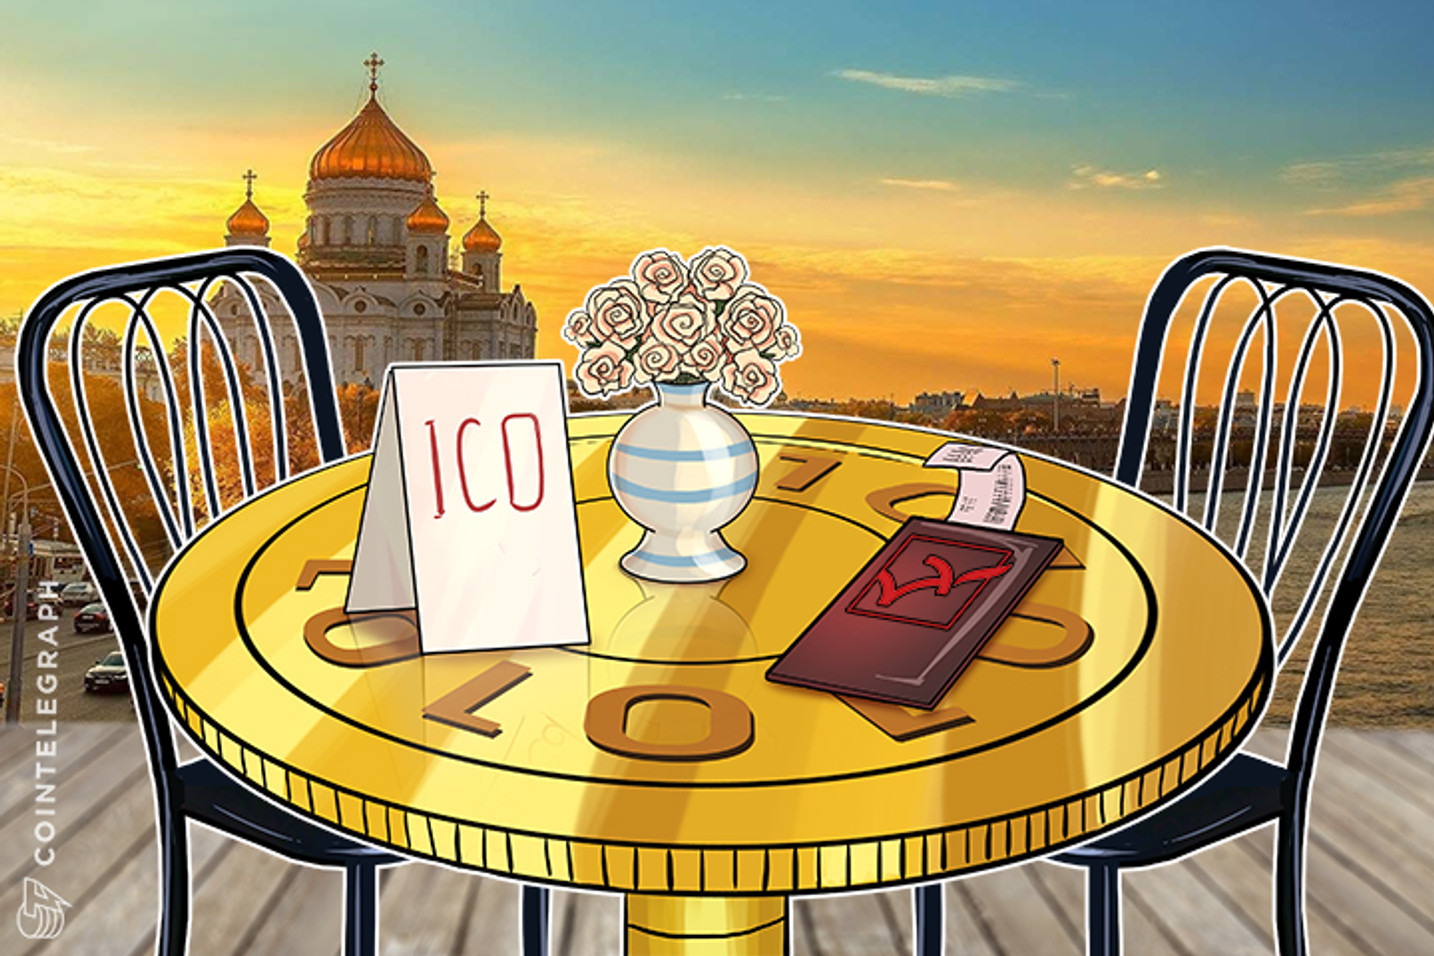 Russian Restaurant Chain Launches ICO-Themed Menu Complete With Chinese Ban